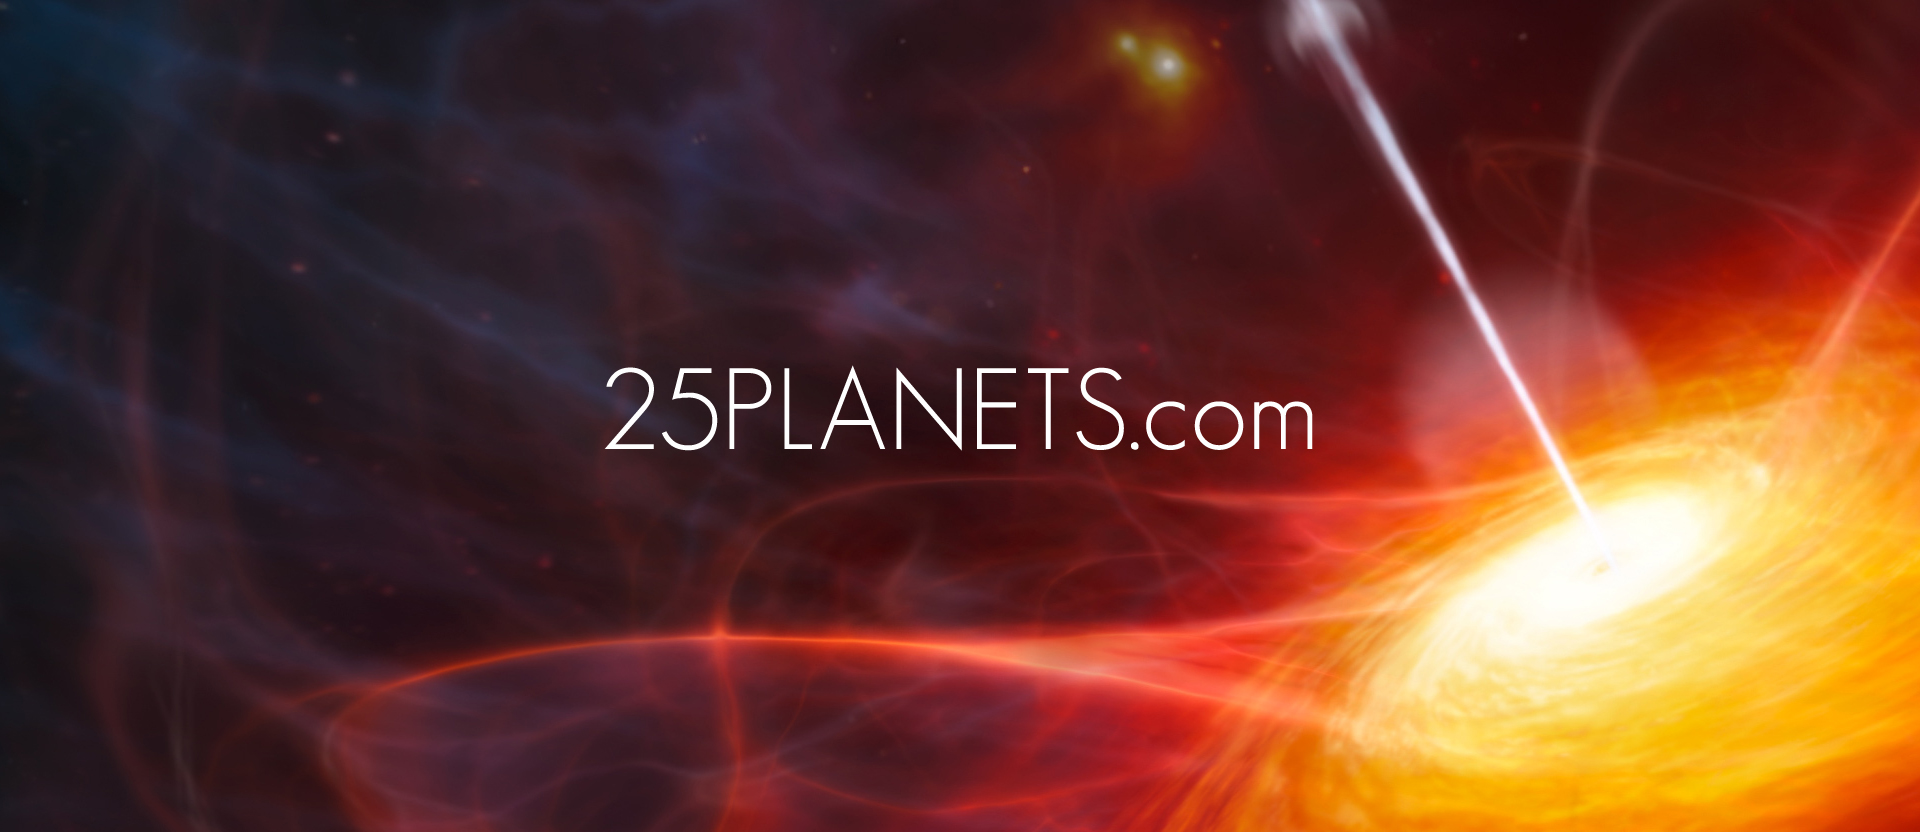 25planets